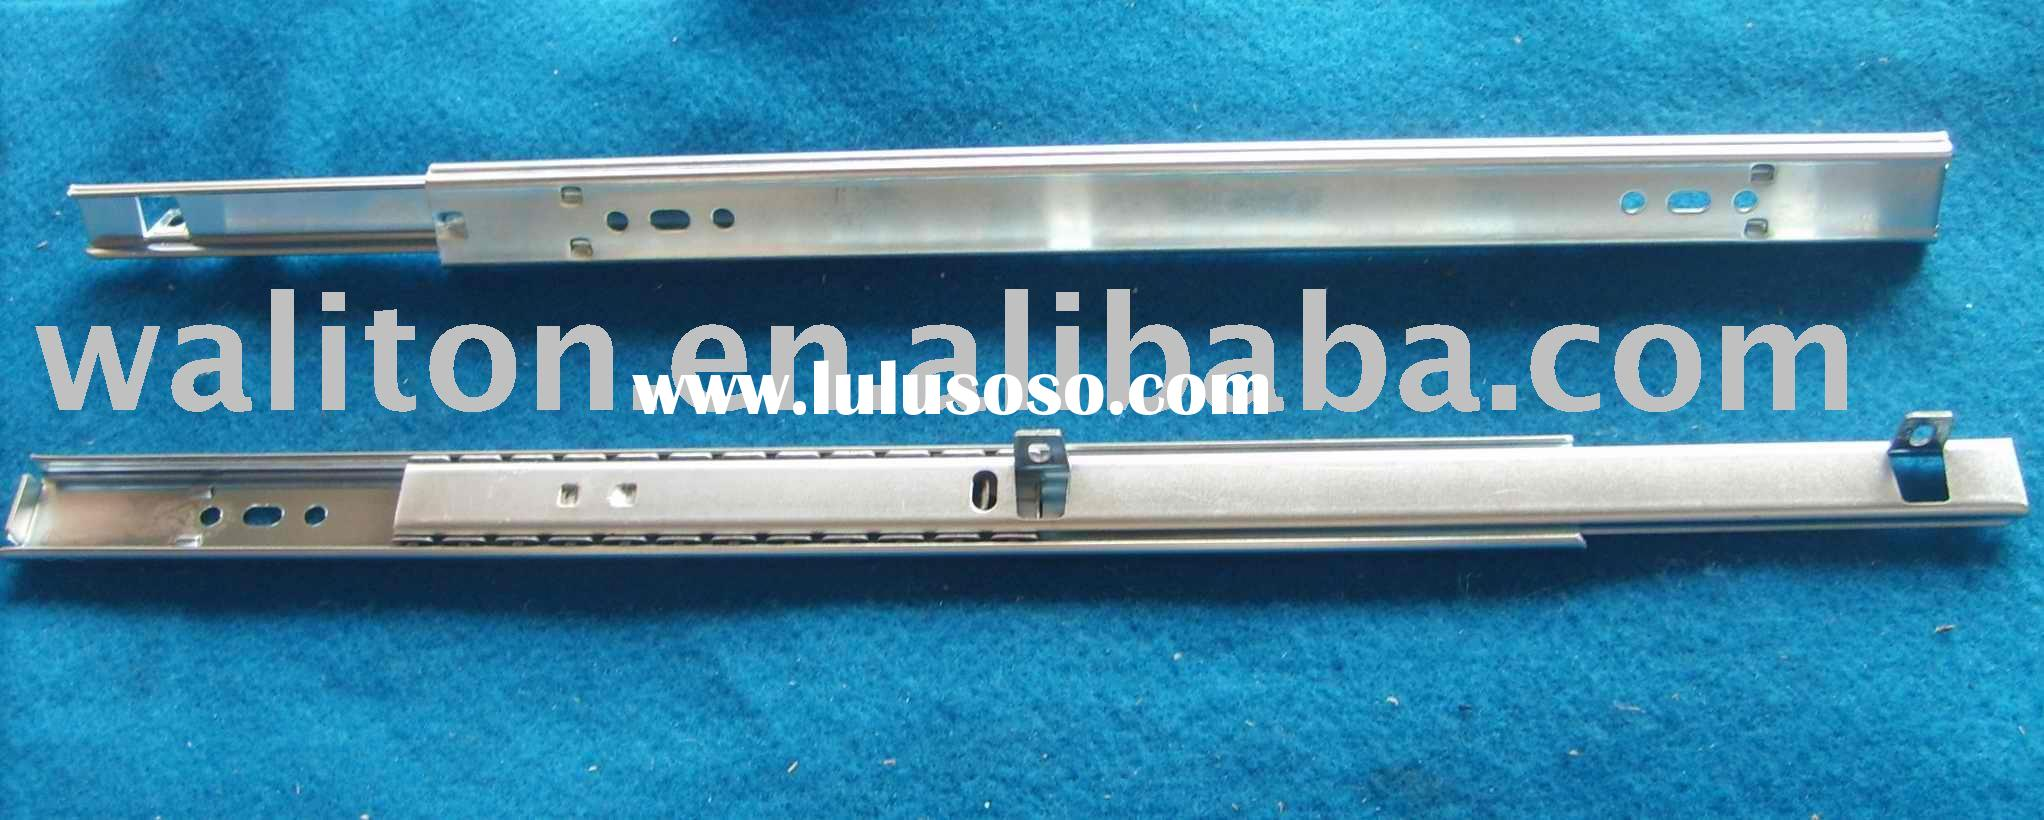 double extension ball bearing slide